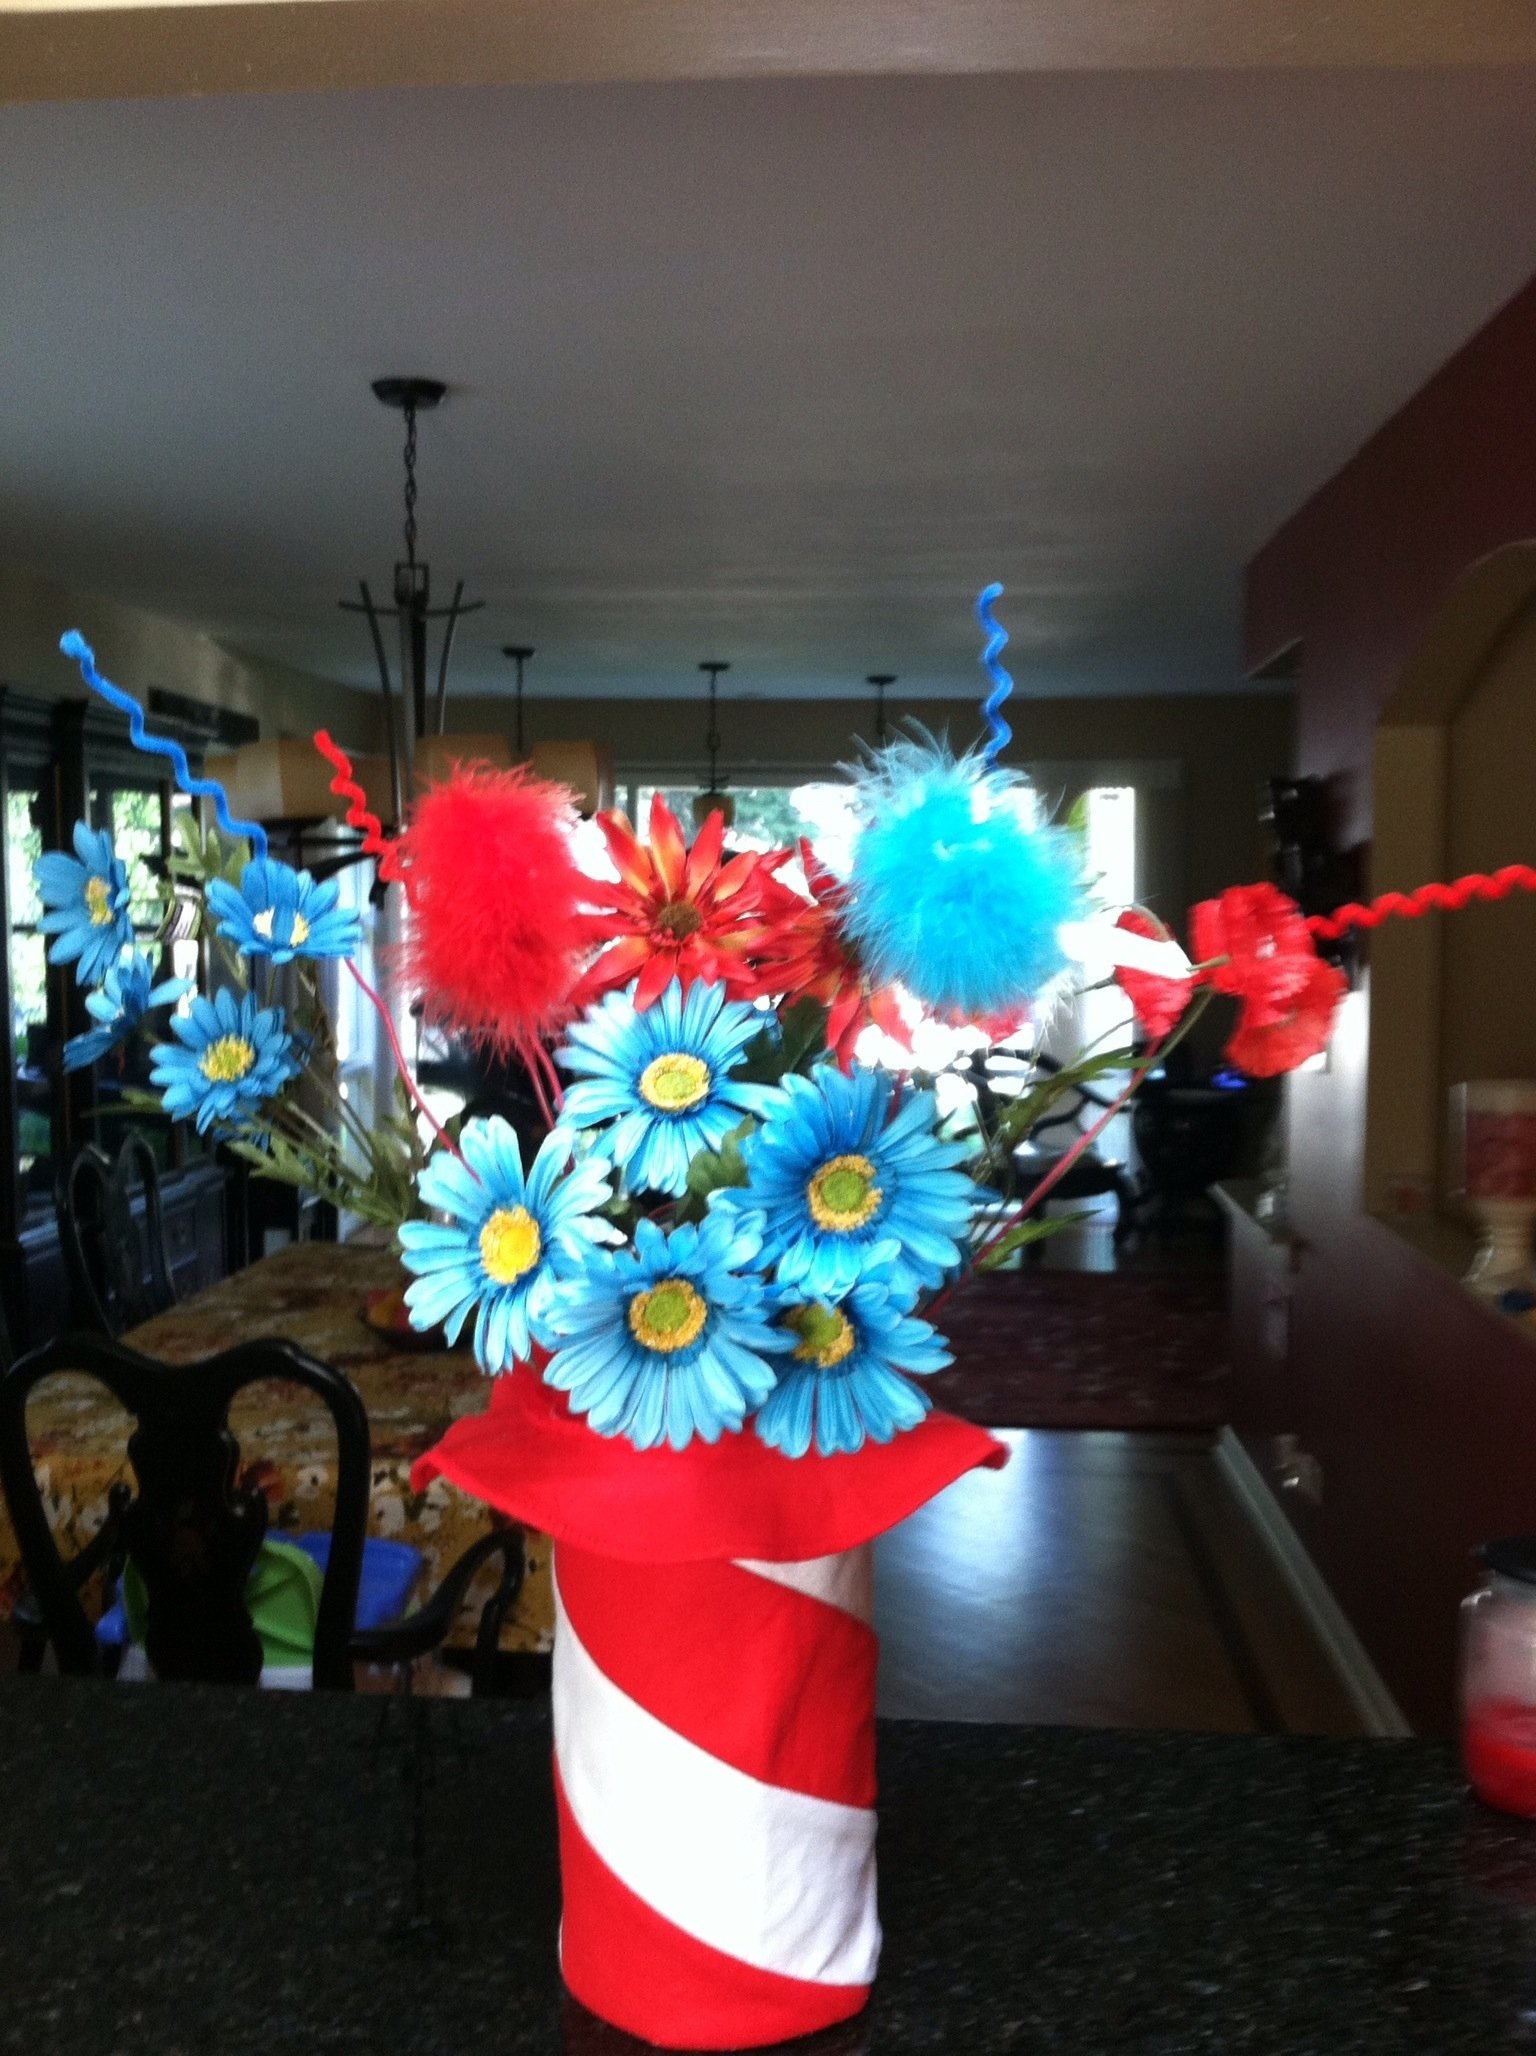 10 Fantastic Thing 1 And Thing 2 Baby Shower Ideas thing 1 thing 2 baby shower centerpieces e280a2 baby showers ideas 2021